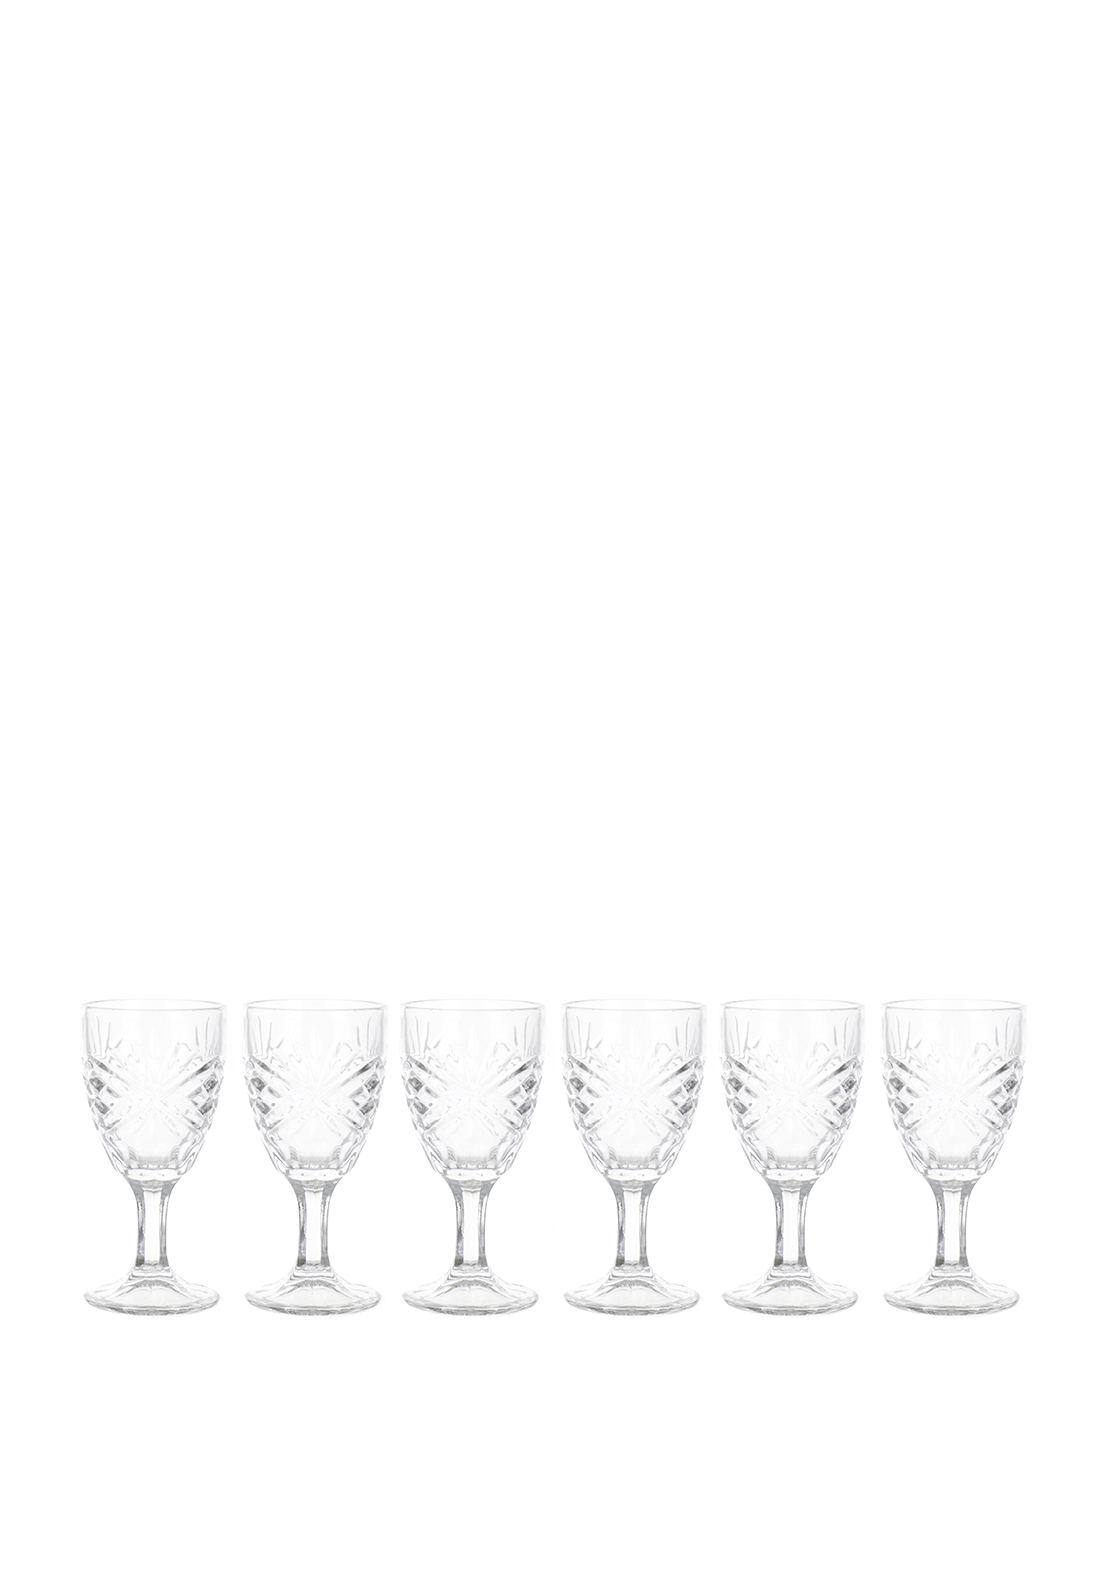 Killarney Crystal Trinity Sherry Glasses, Set of 6